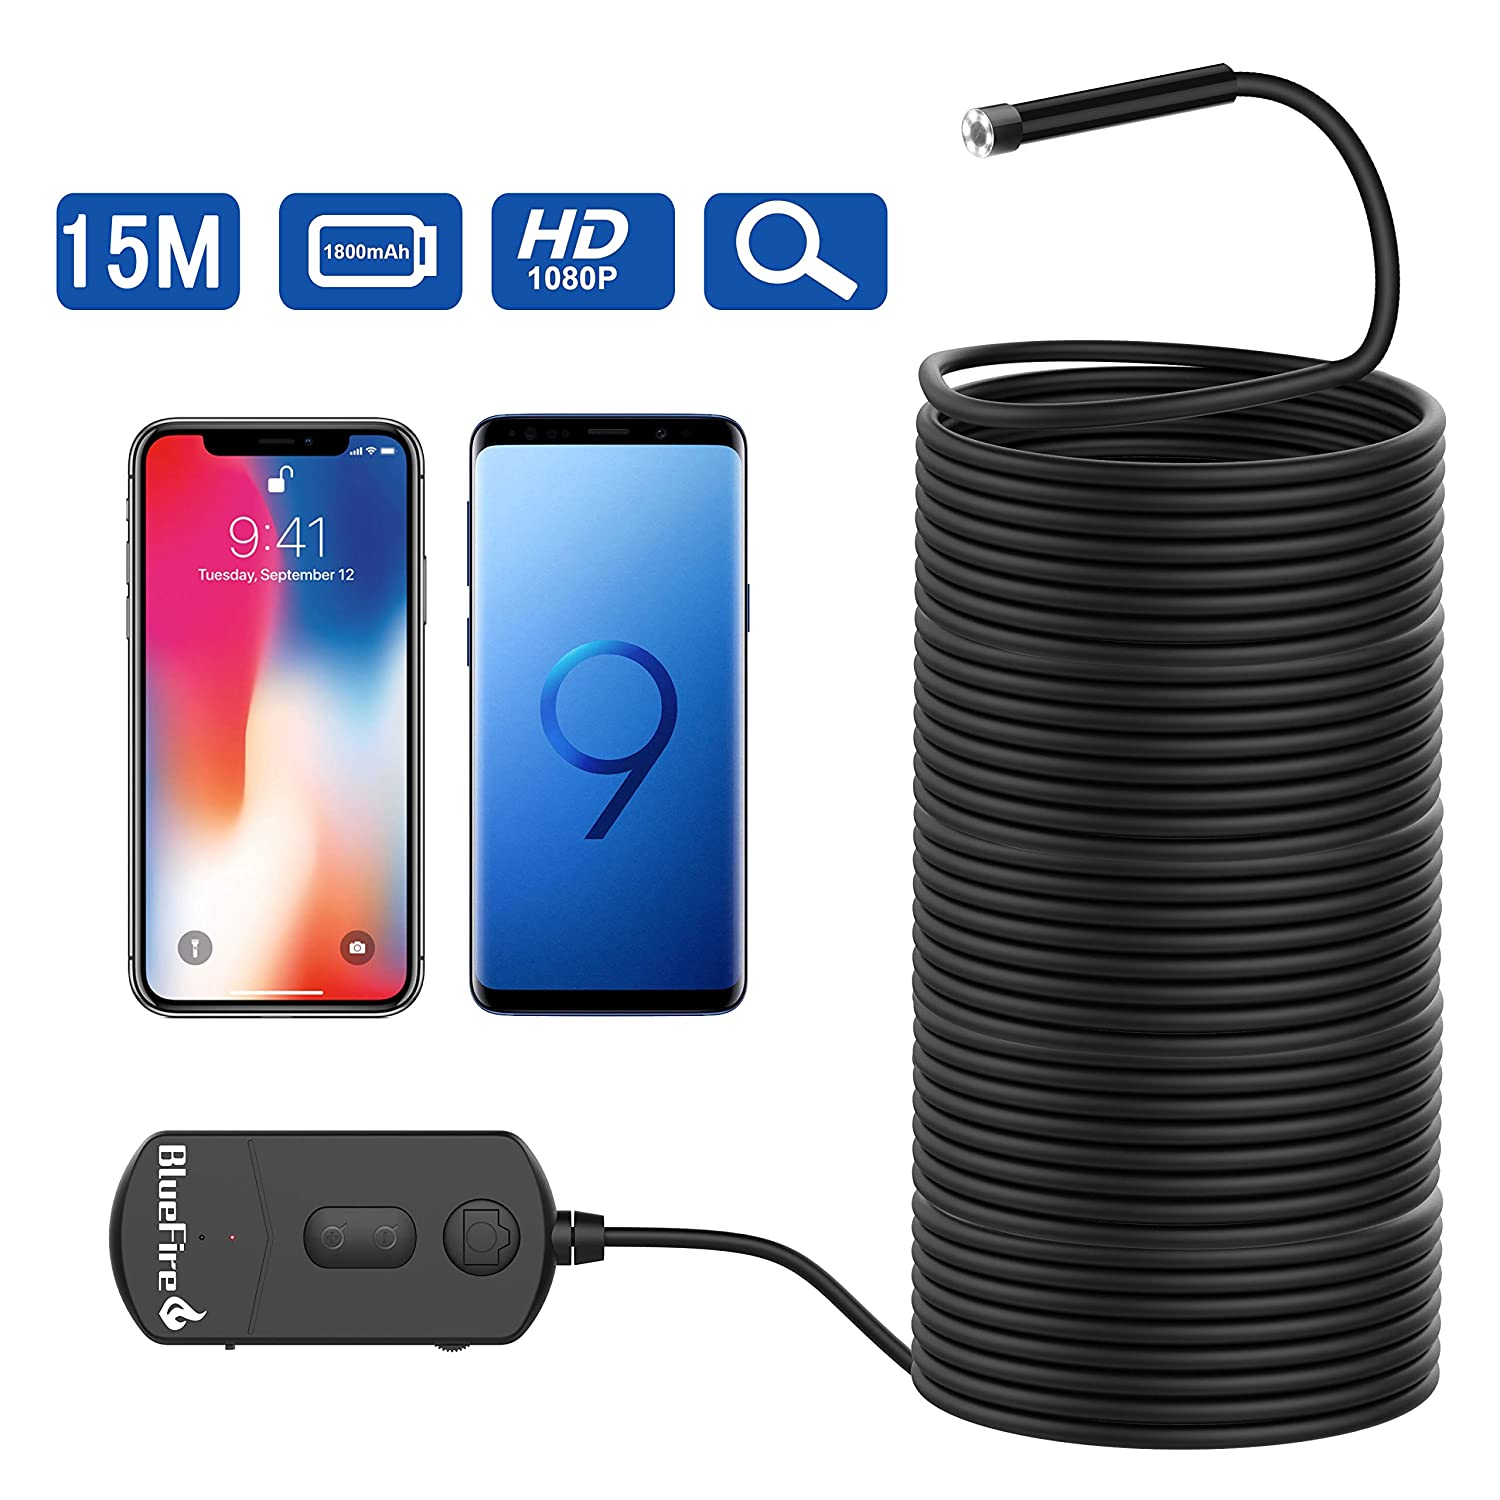 Video Surveillance Security & Protection 2-5-10m Red 2-in-1 Android Endoscope Camera Connector Android Borescope Inspection Camera For Car Repairing Pipe Examine Pc To Be Distributed All Over The World